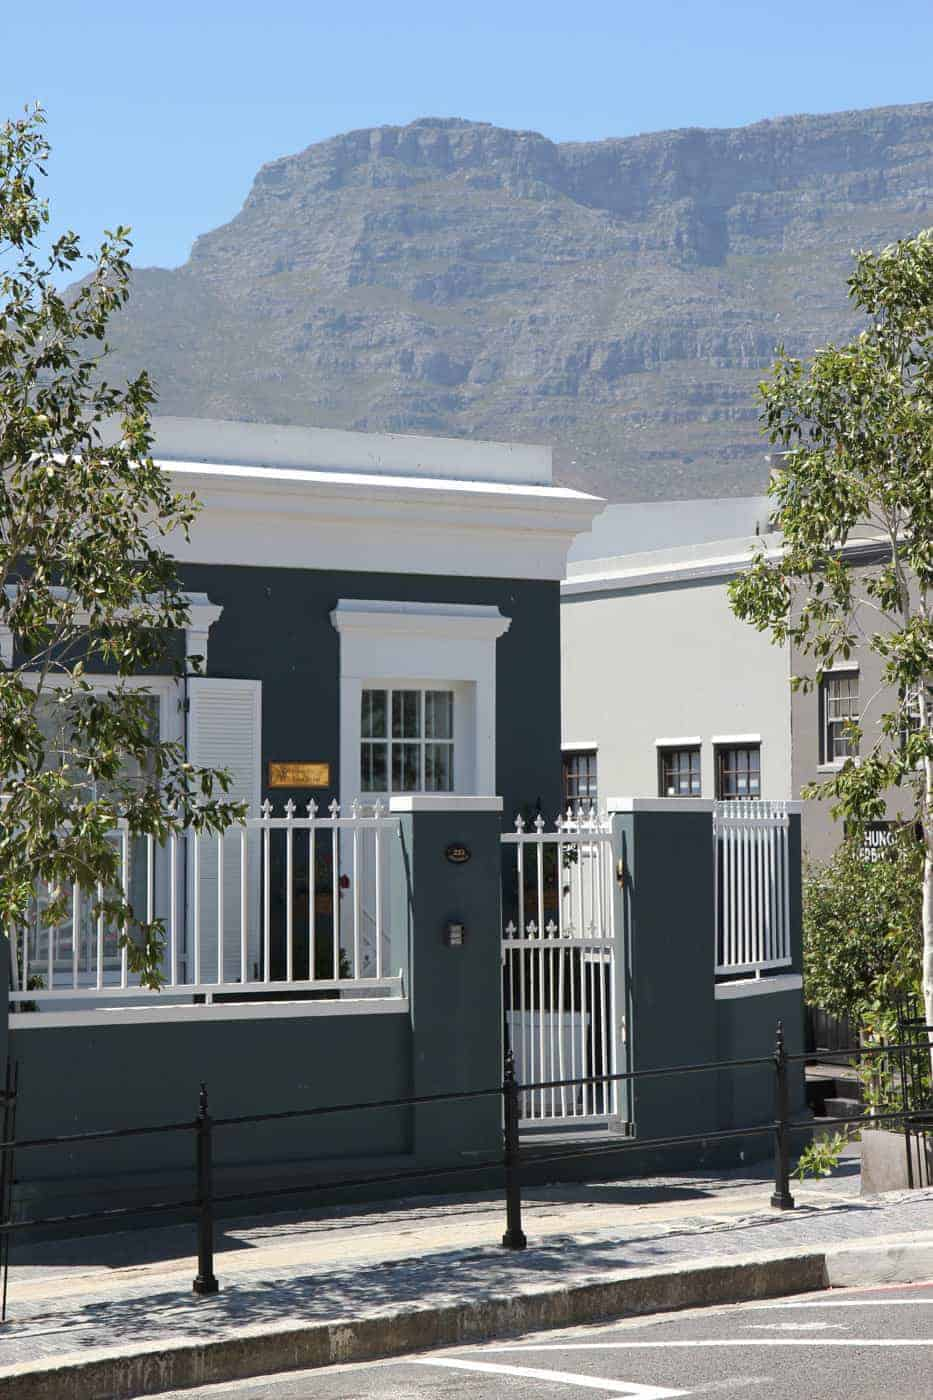 bree street cape town itinerary